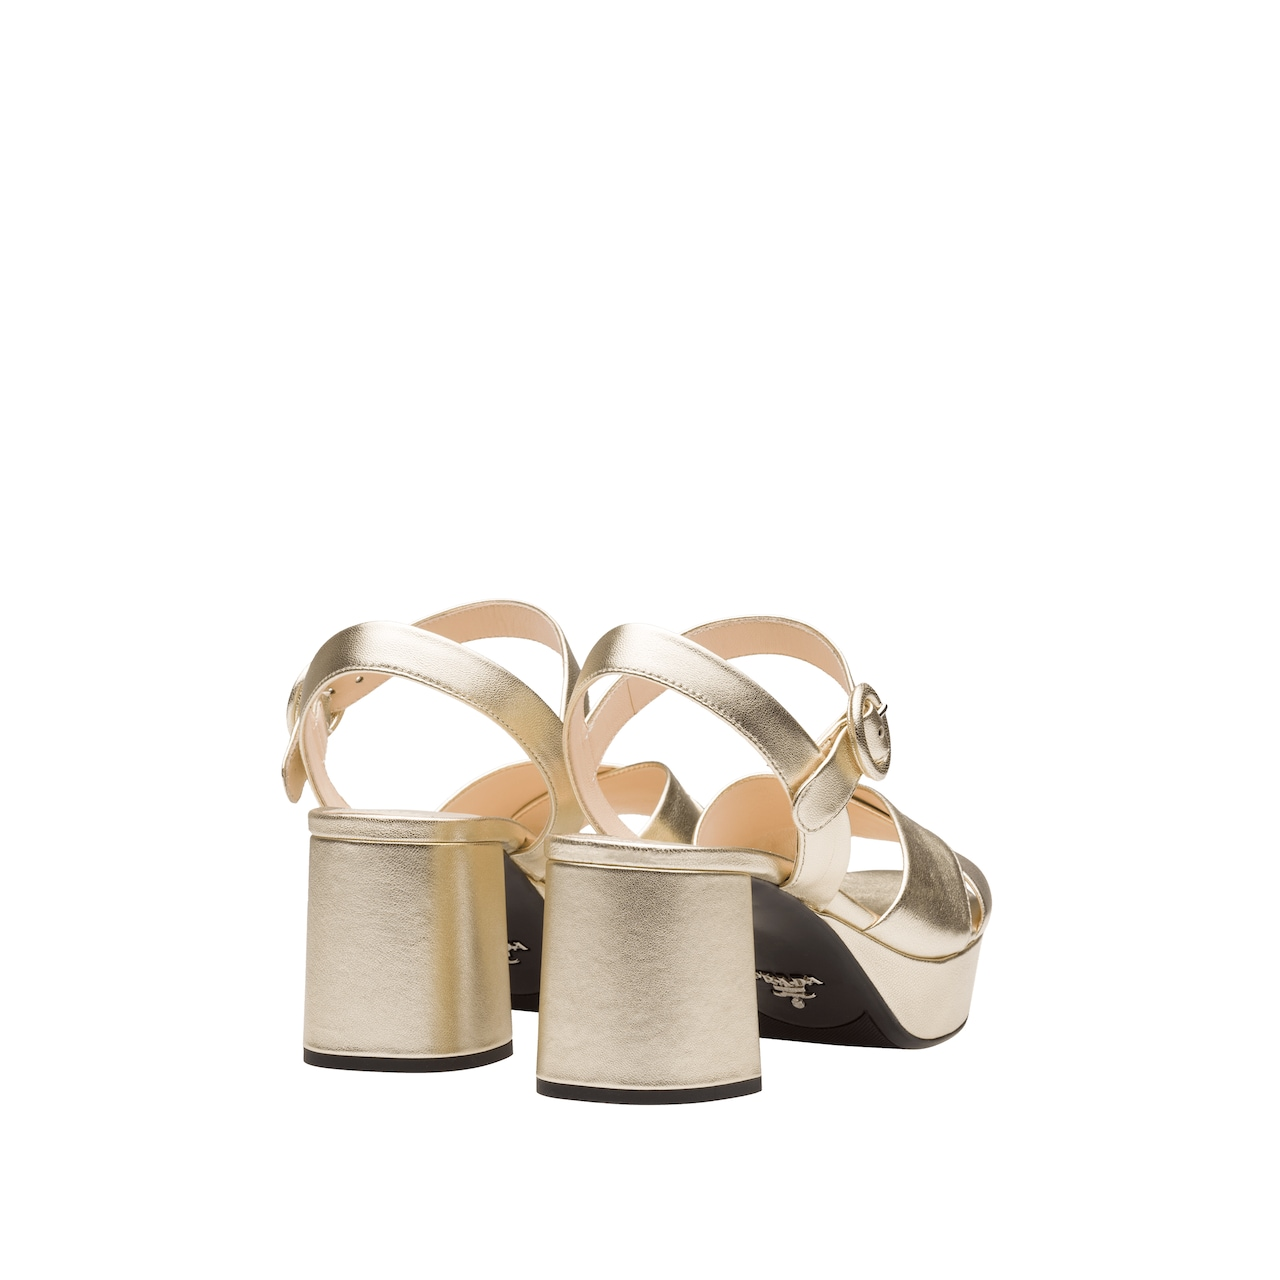 Pearly laminated leather sandals